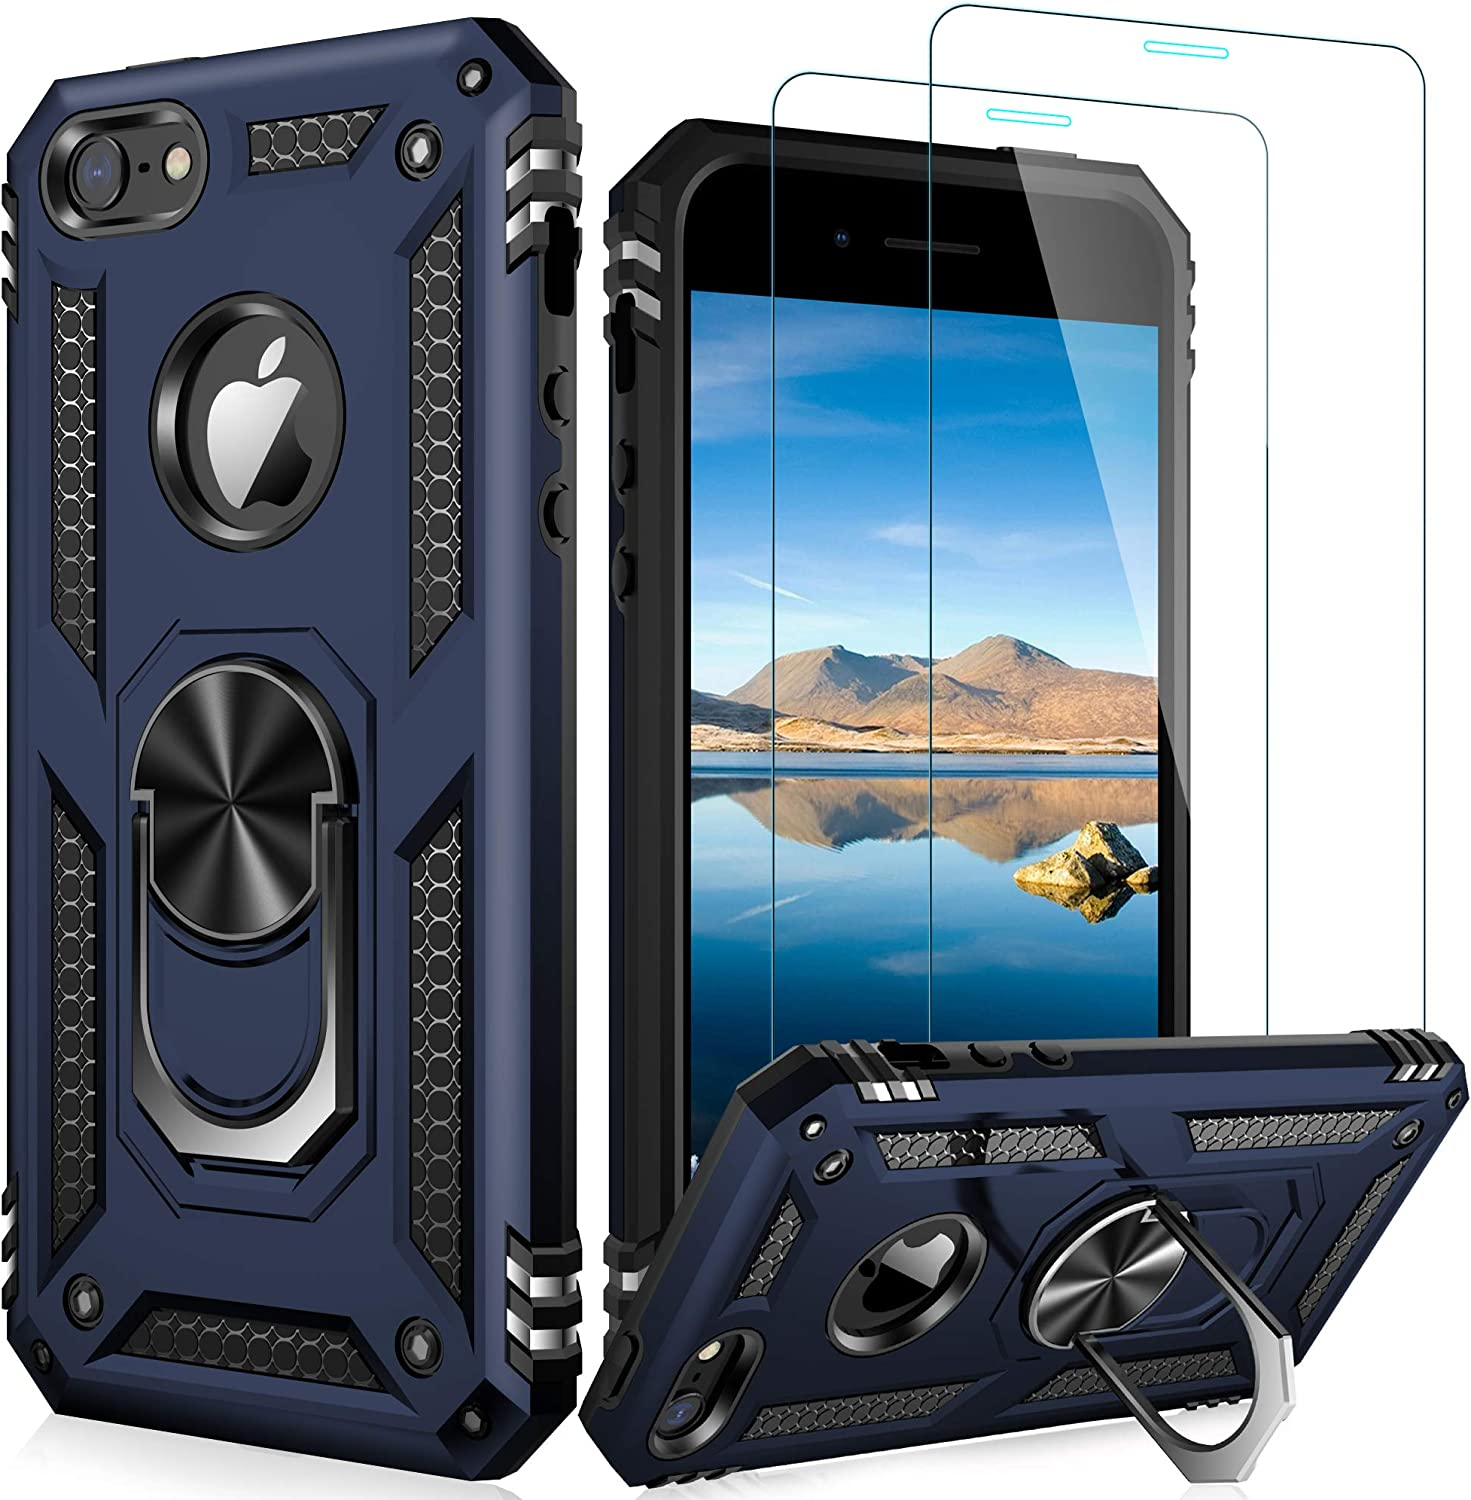 LUMARKE iPhone SE Case(2016),iPhone 5s Case,iPhone 5 Case with Tempered Glass Sreen Protector,Pass 16ft Drop Test Military Grade Cover Protective Phone Case for iPhone 5/5s/SE 2016 Blue